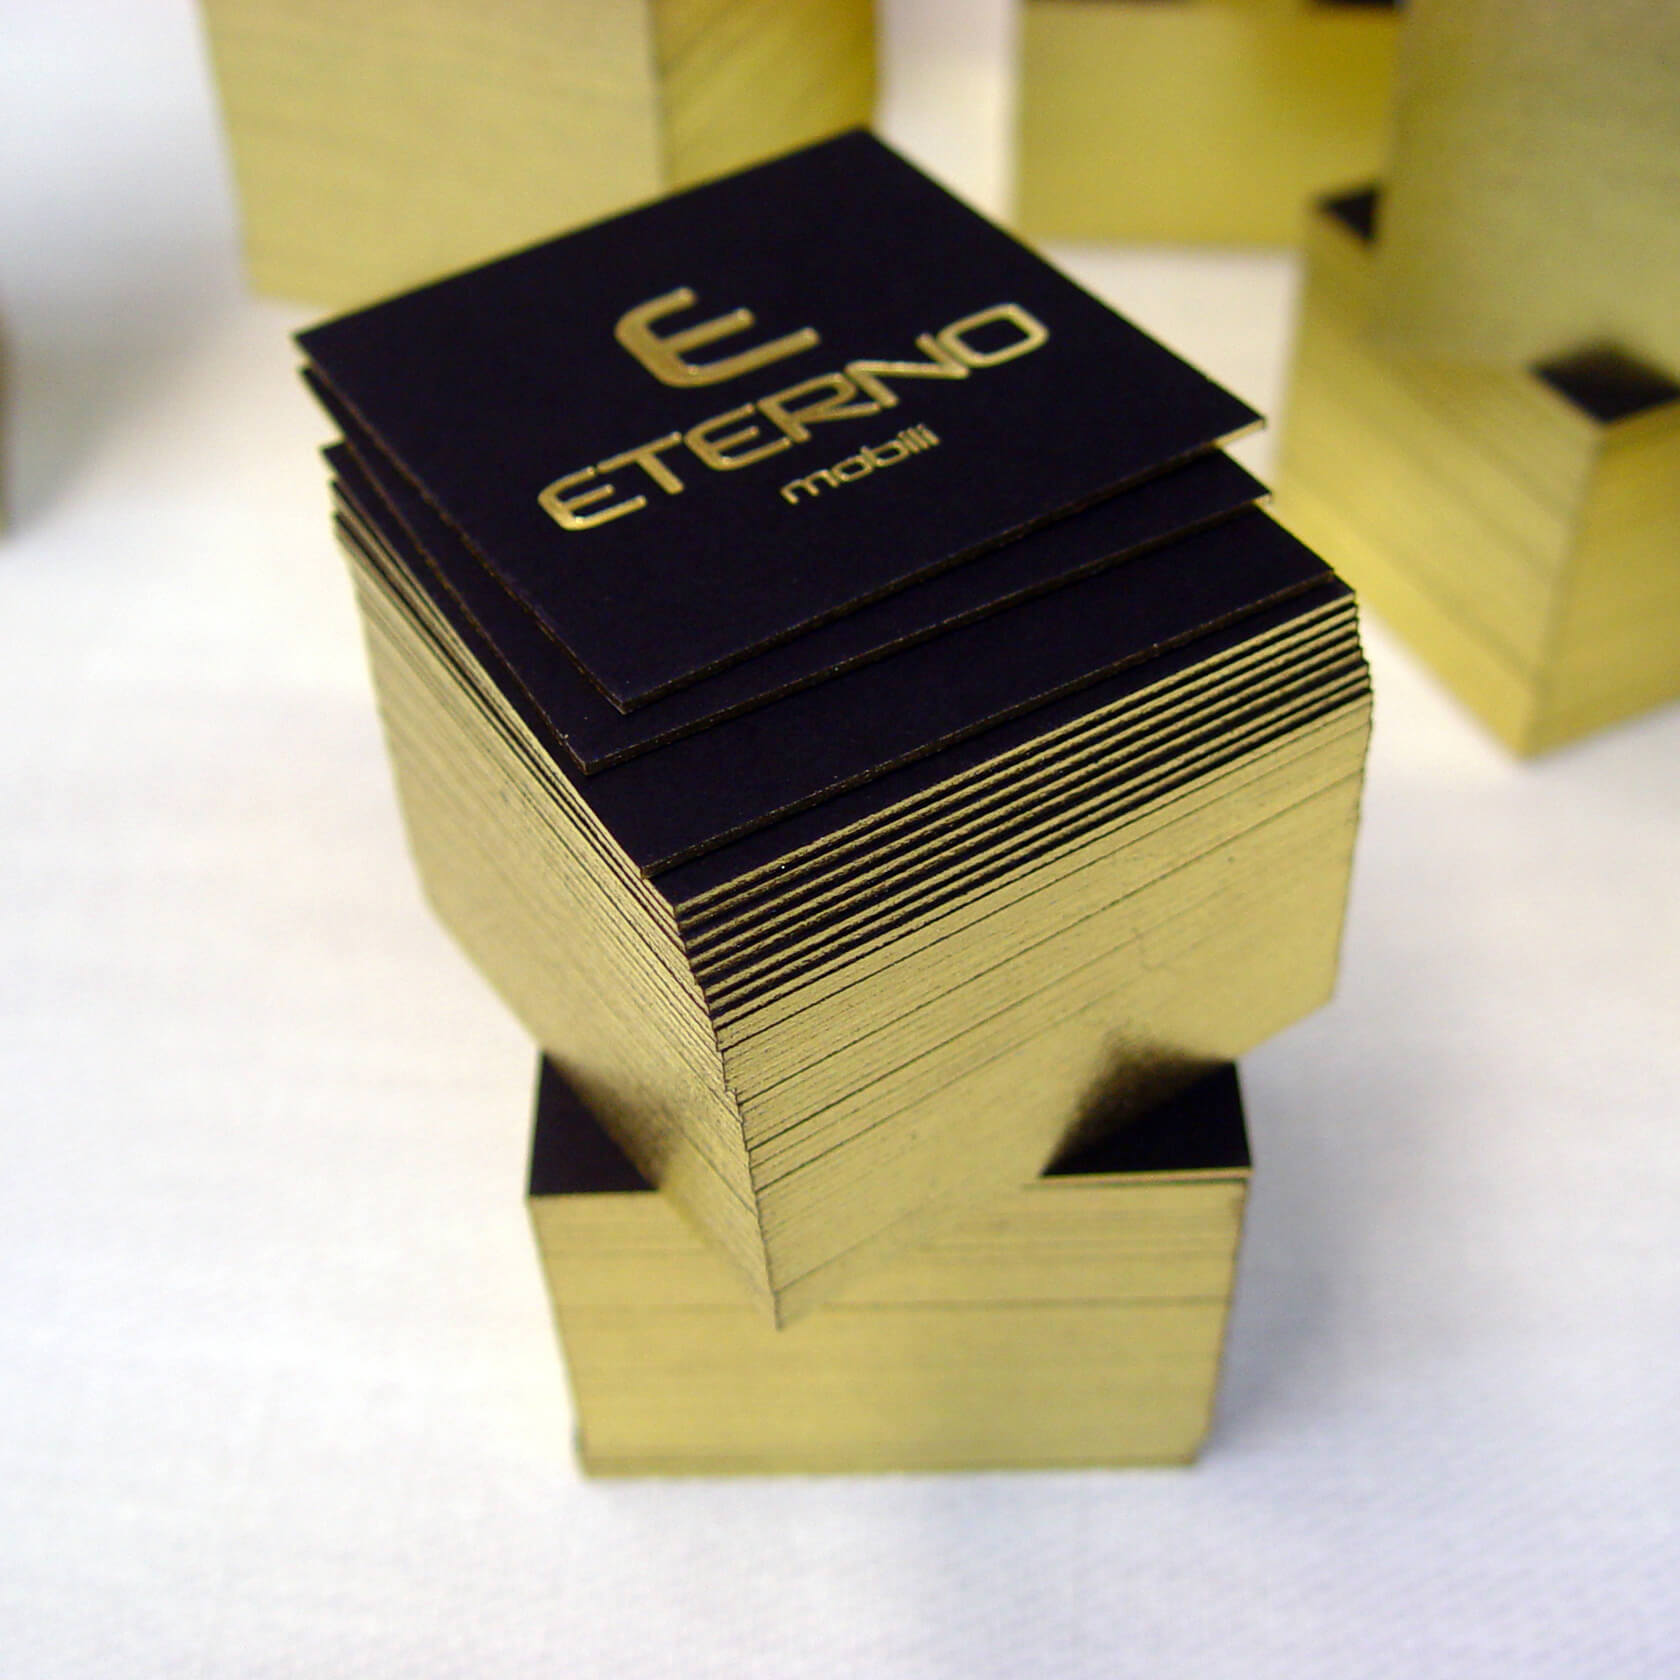 Eterno mobili golden edge cards